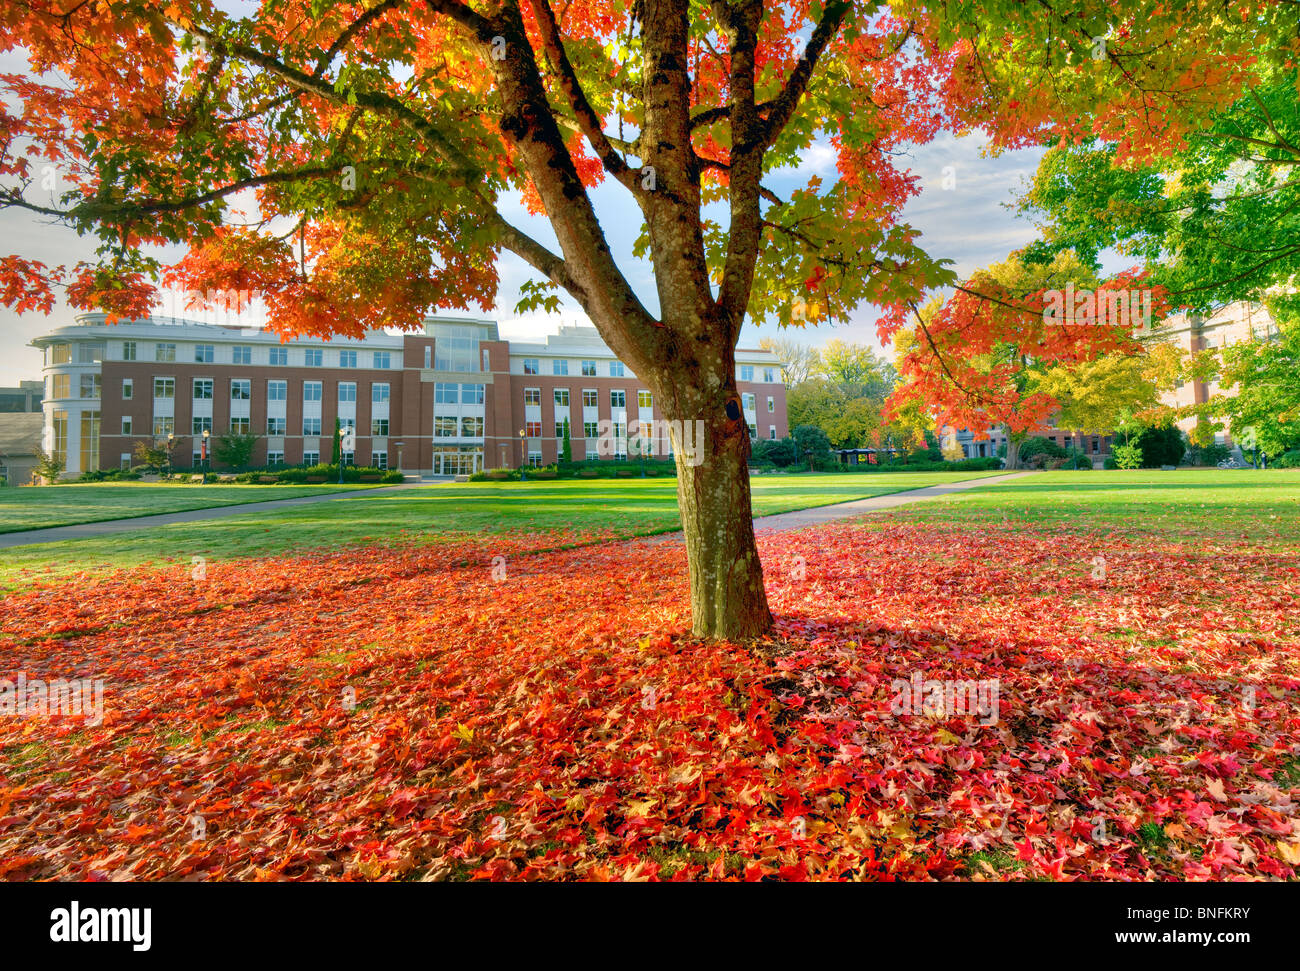 La valle di biblioteca e quad con Autunno a colori. Oregon State University. Immagini Stock